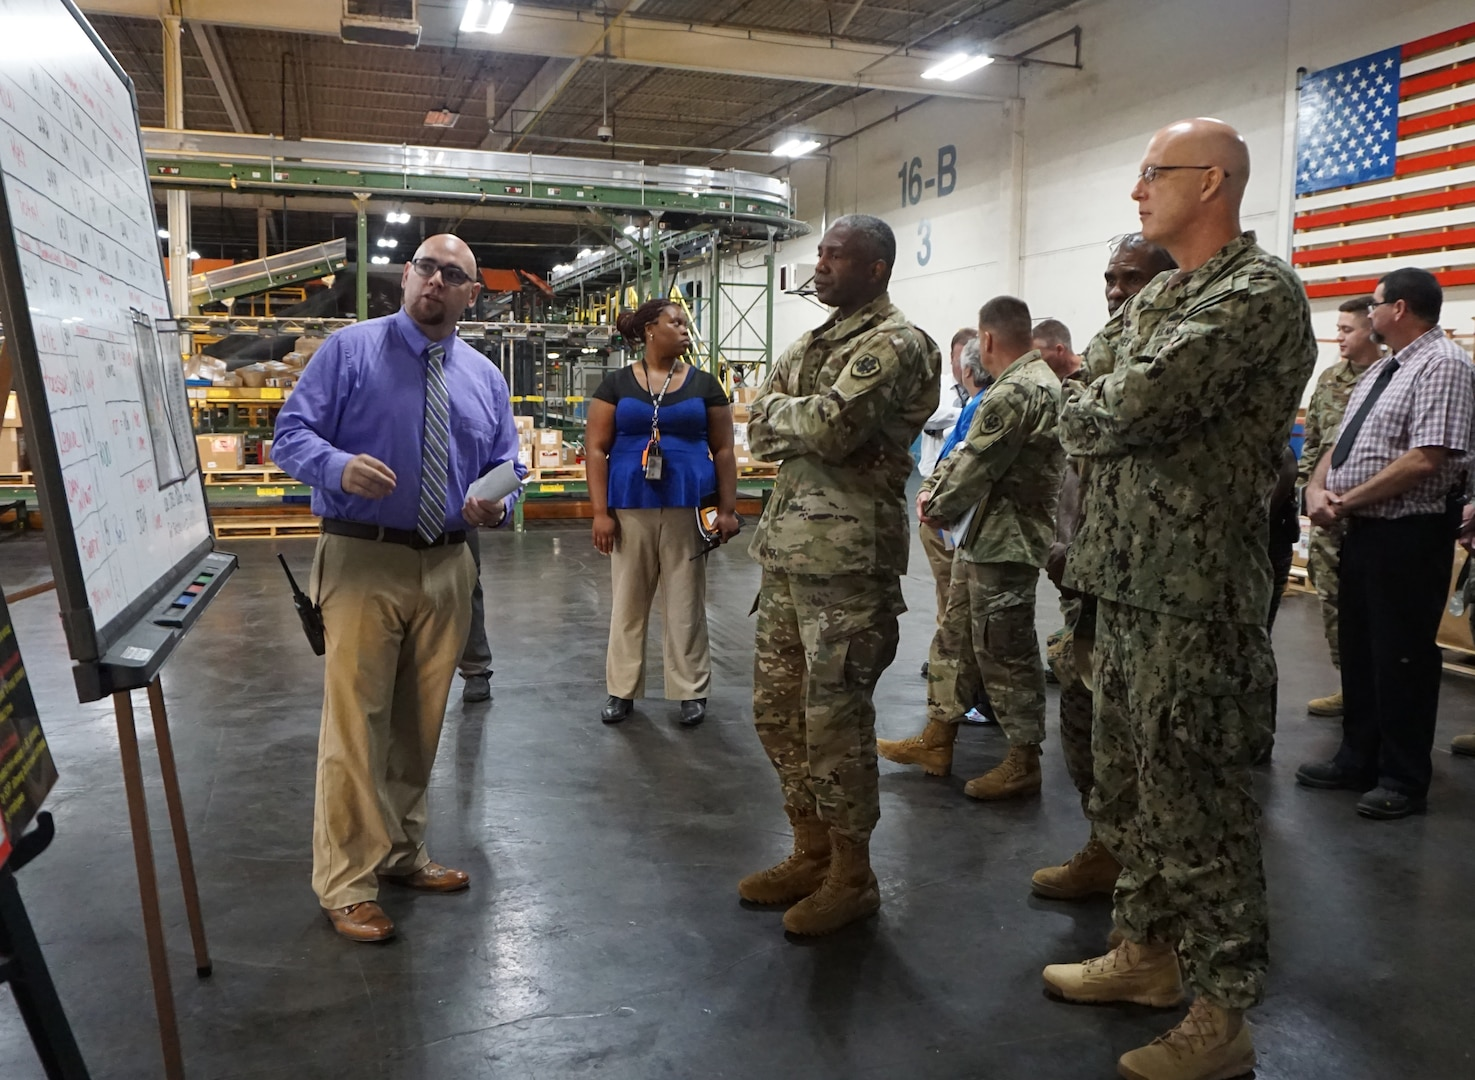 Marc Marquez, Bin Division Chief, is explaining the production board to the DLA Director as DLA Distribution Commanding Officer Navy Rear Adm. Kevin Jones and DLA Distribution San Joaquin Commander Marine Col. Andre Harrell listen.